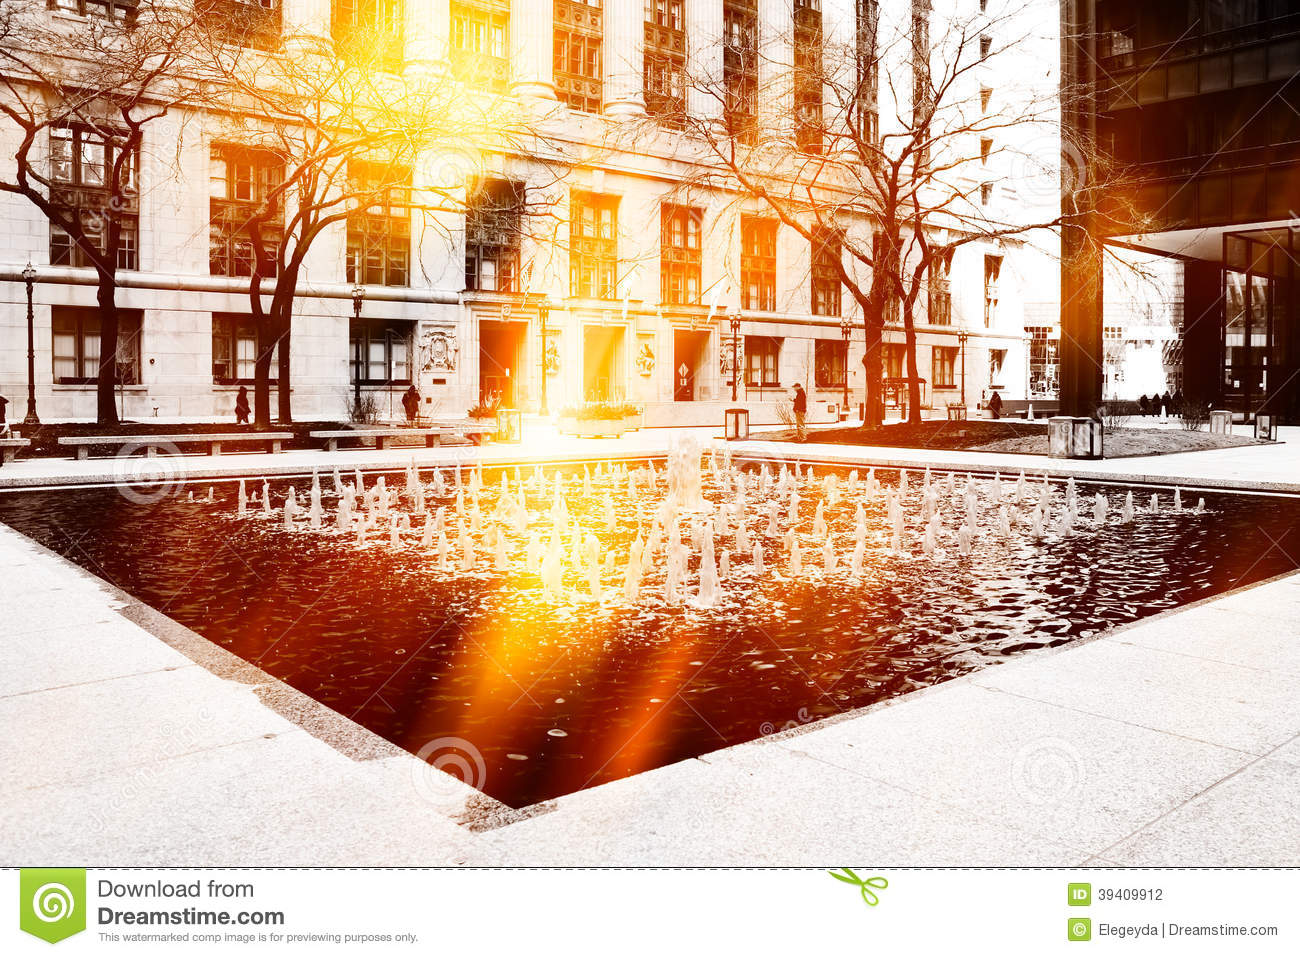 Urban Street Scene Stock Photo - Image: 39409912